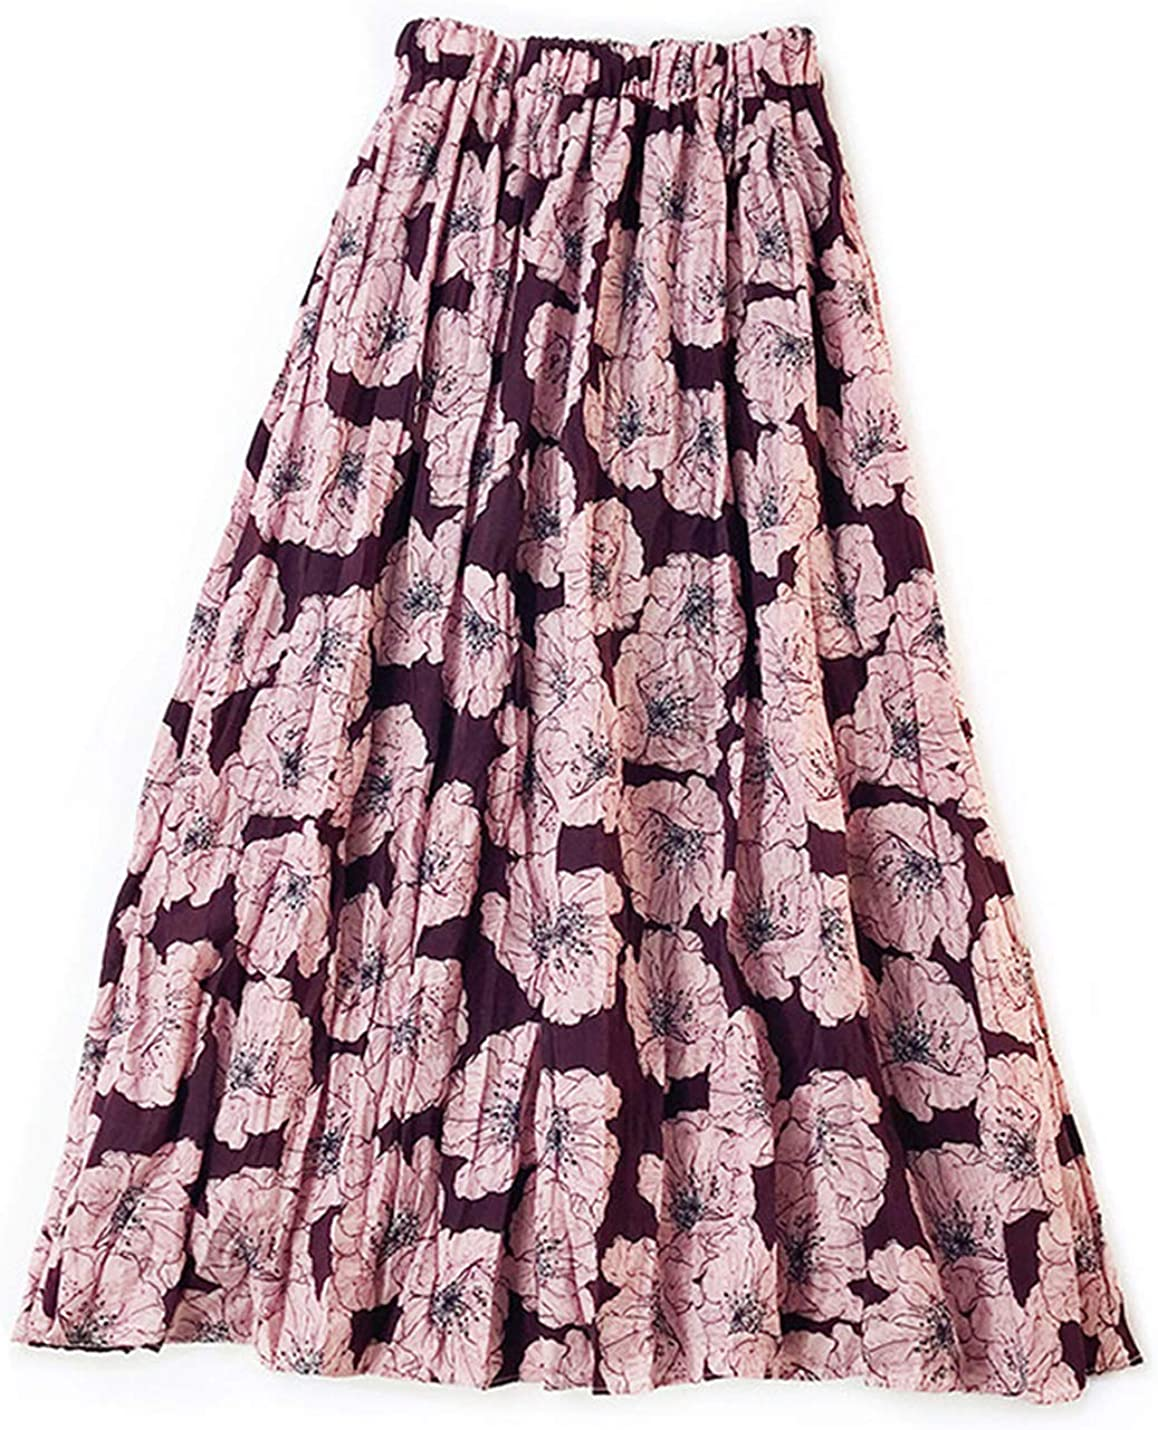 Gihuo Women's Casual Vintage Floral Boho Pleated Midi Skirt